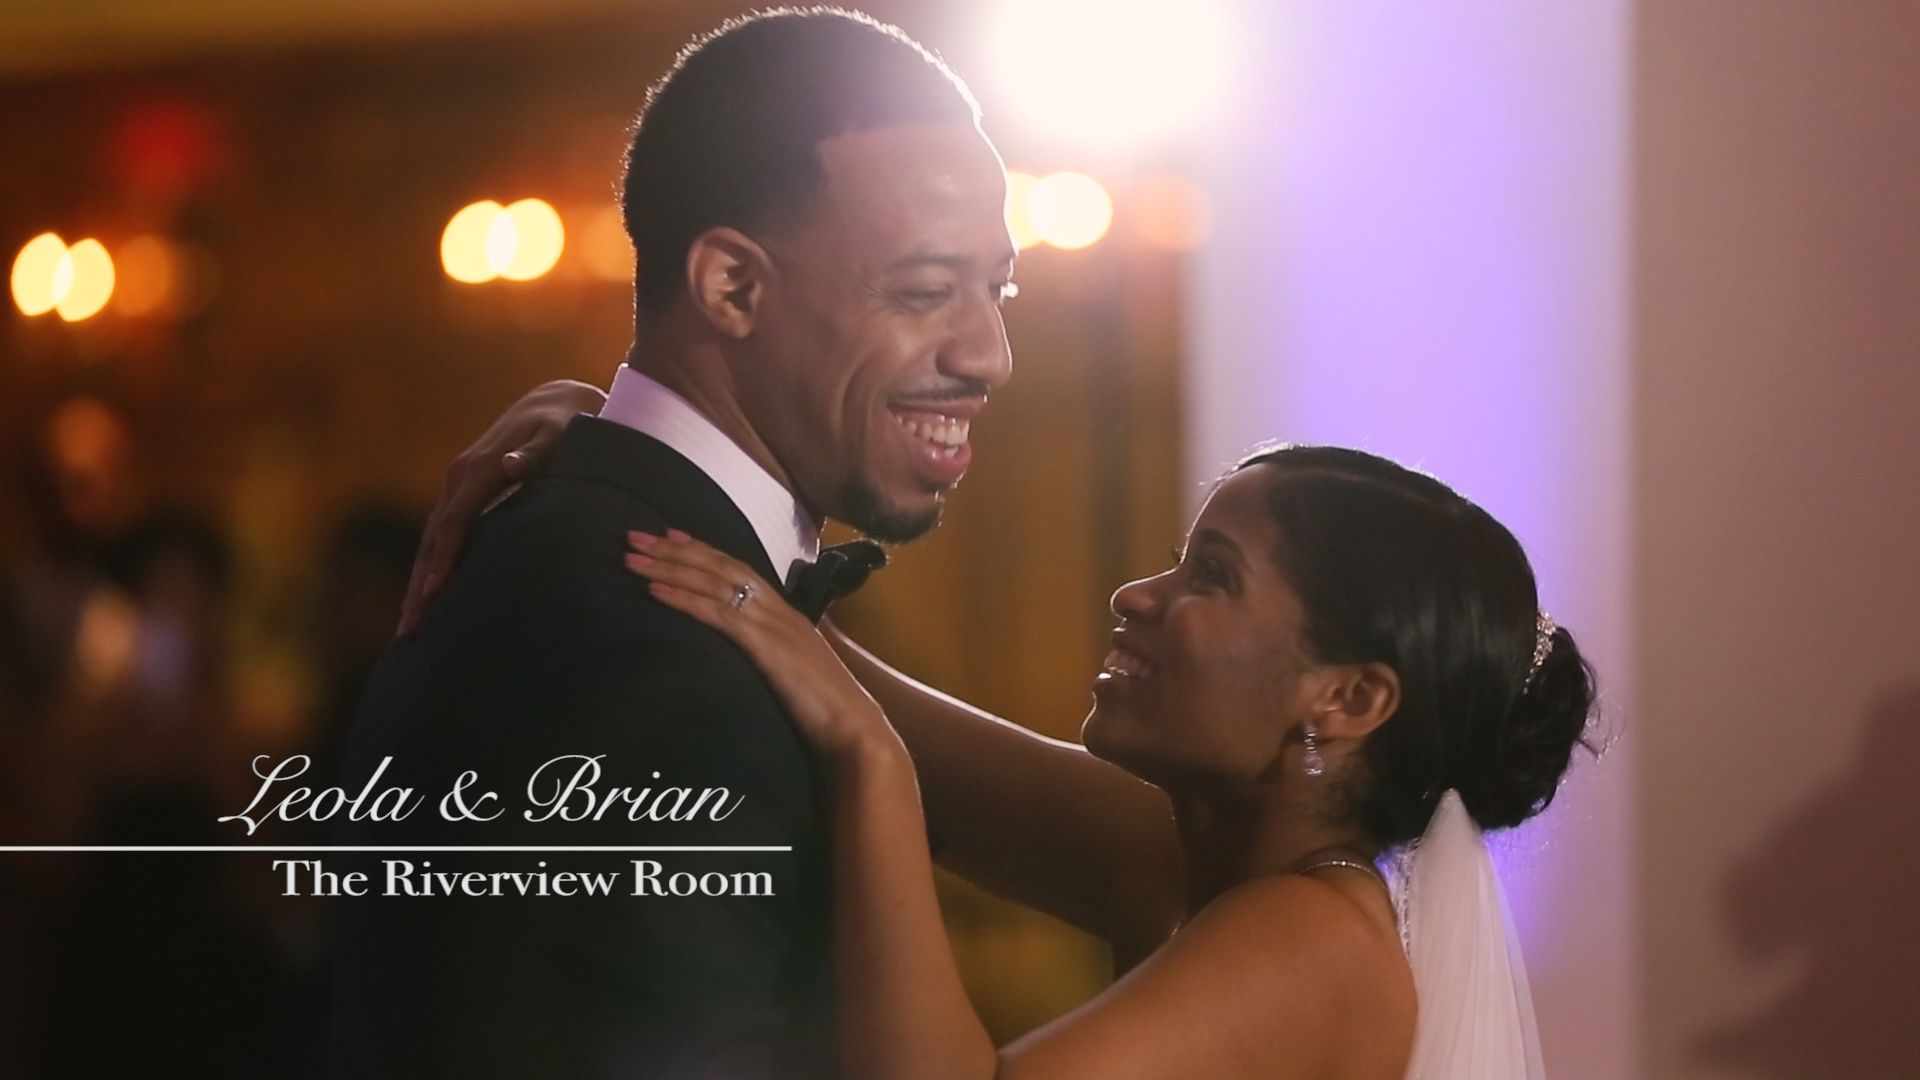 Leola & Brian // Riverview Room Wedding Video  http://www.bridefilm.com/blog-bridefilm/leola-brian-riverview-room-wedding-video